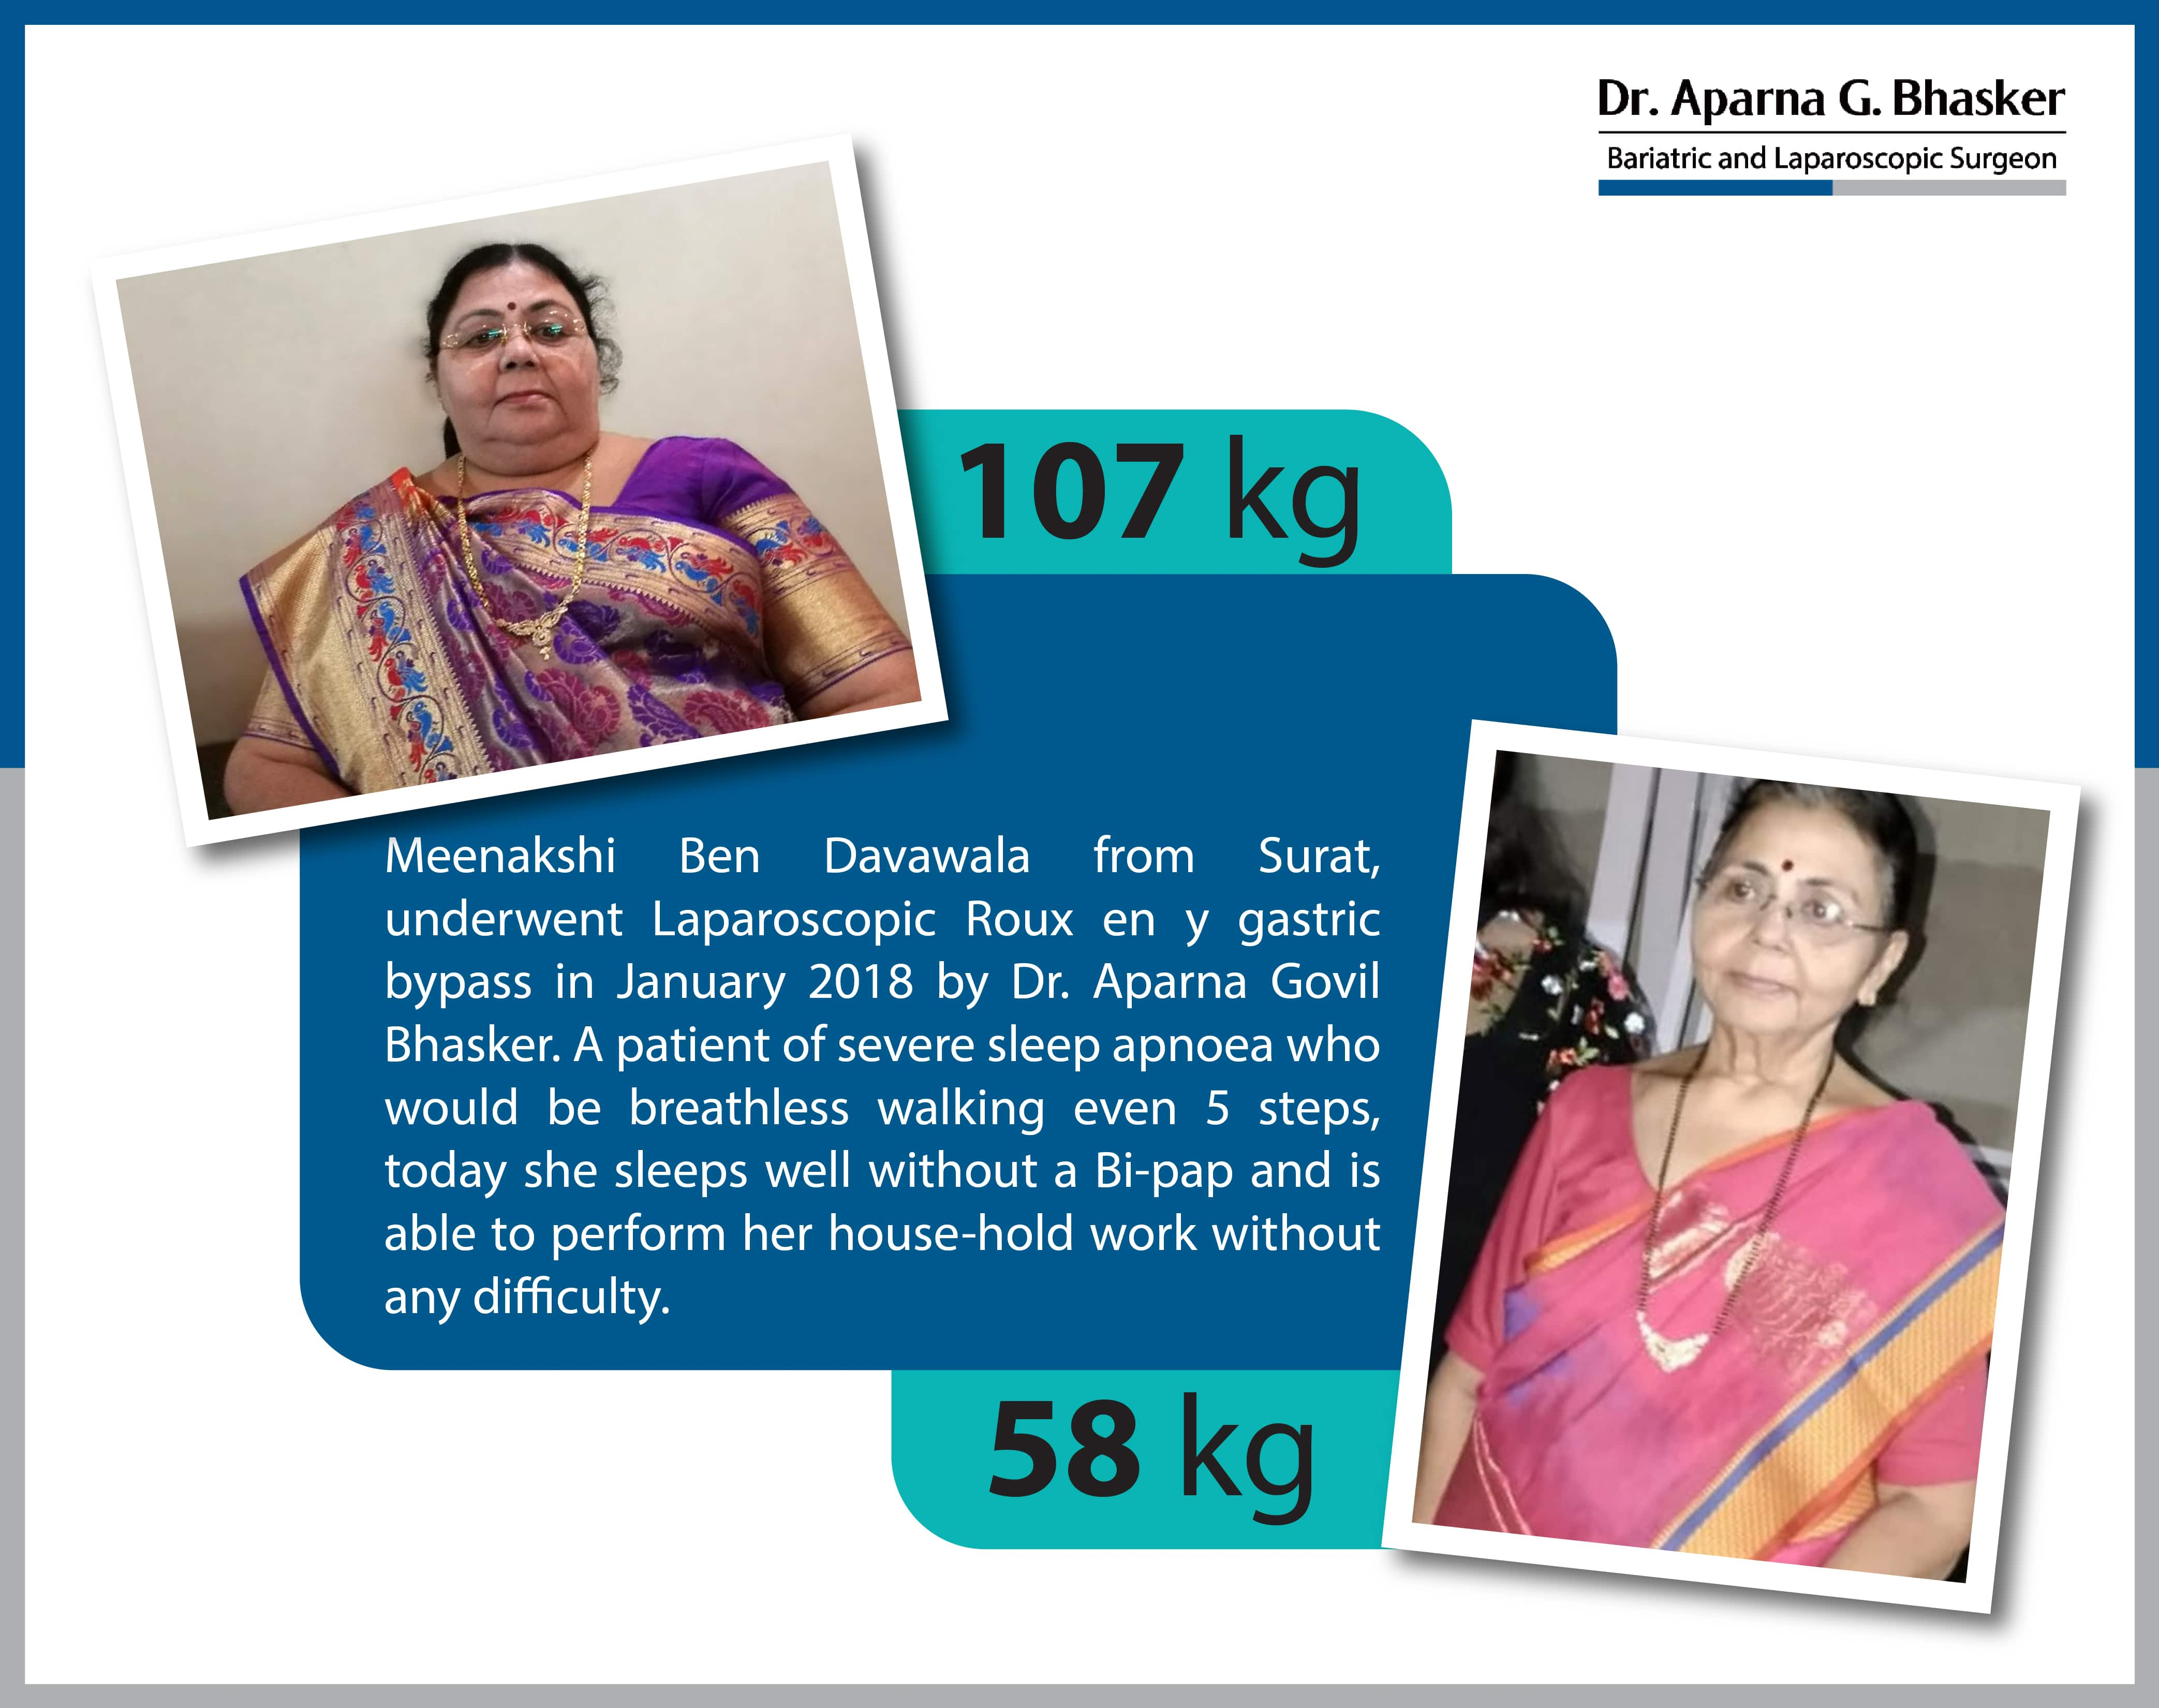 best metabolic bariatric surgery for diabetes weight loss surgery cost in mumbai india before after photos (4)